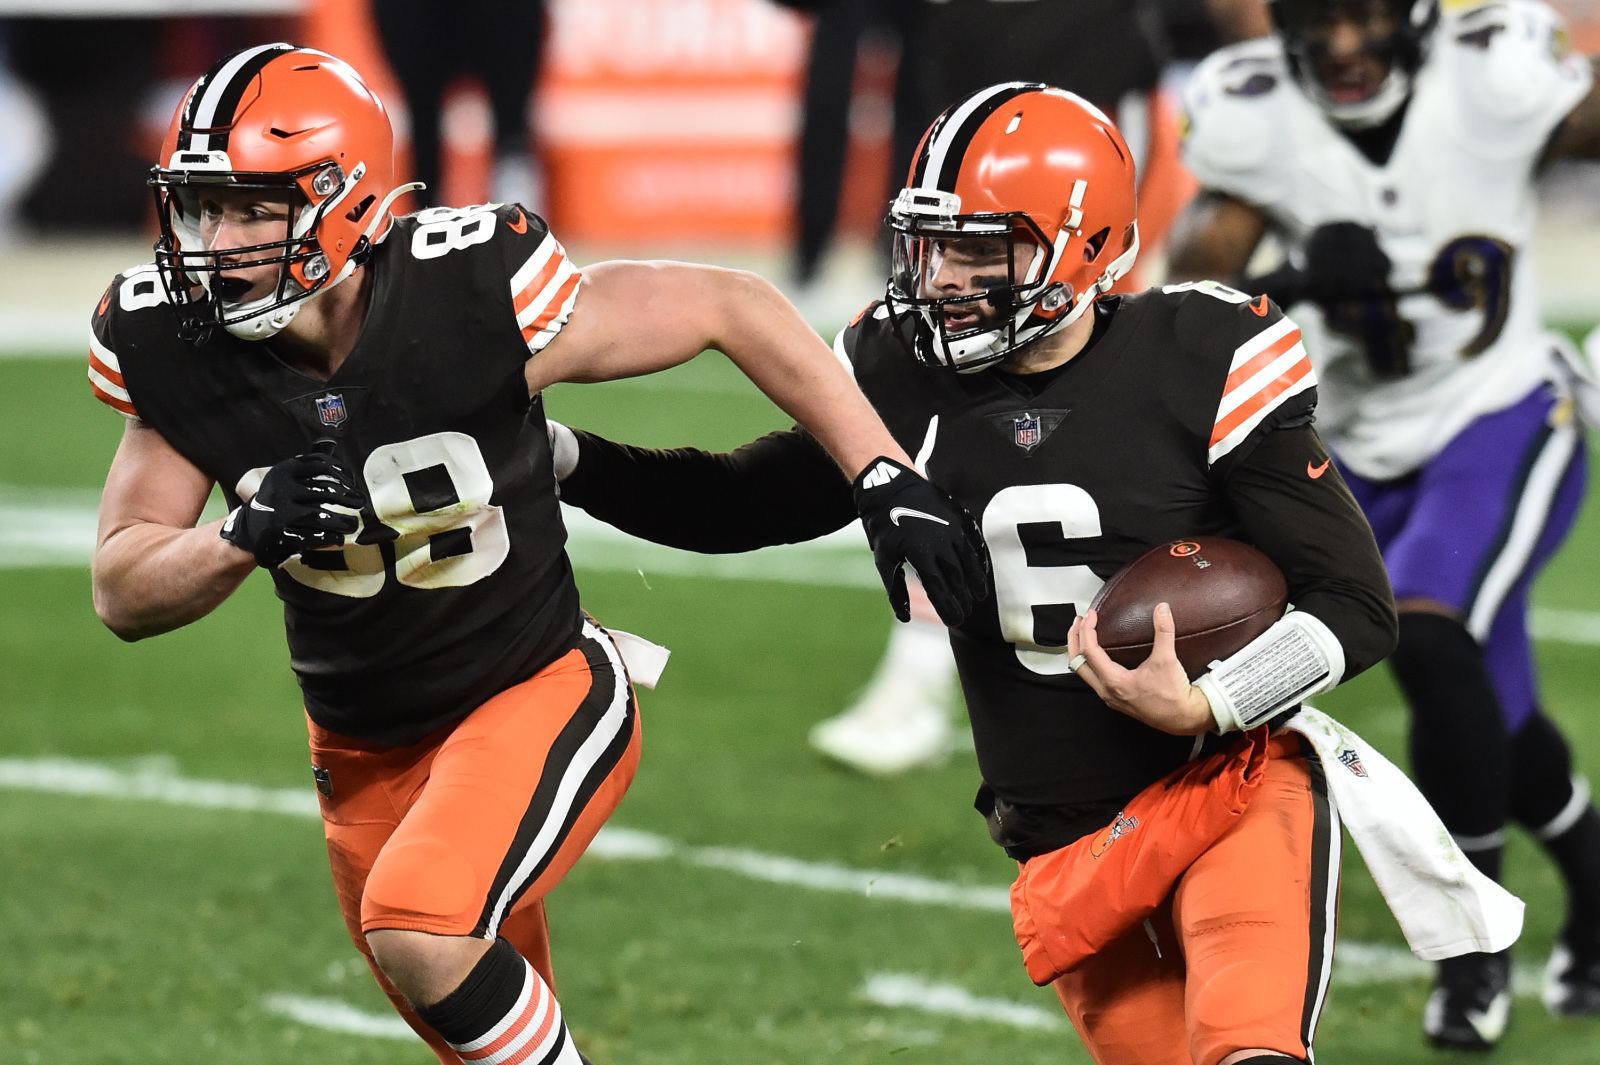 Cleveland Browns quarterback Baker Mayfield #6, running the ball down the NFL field with #38 Ty Zimmerman